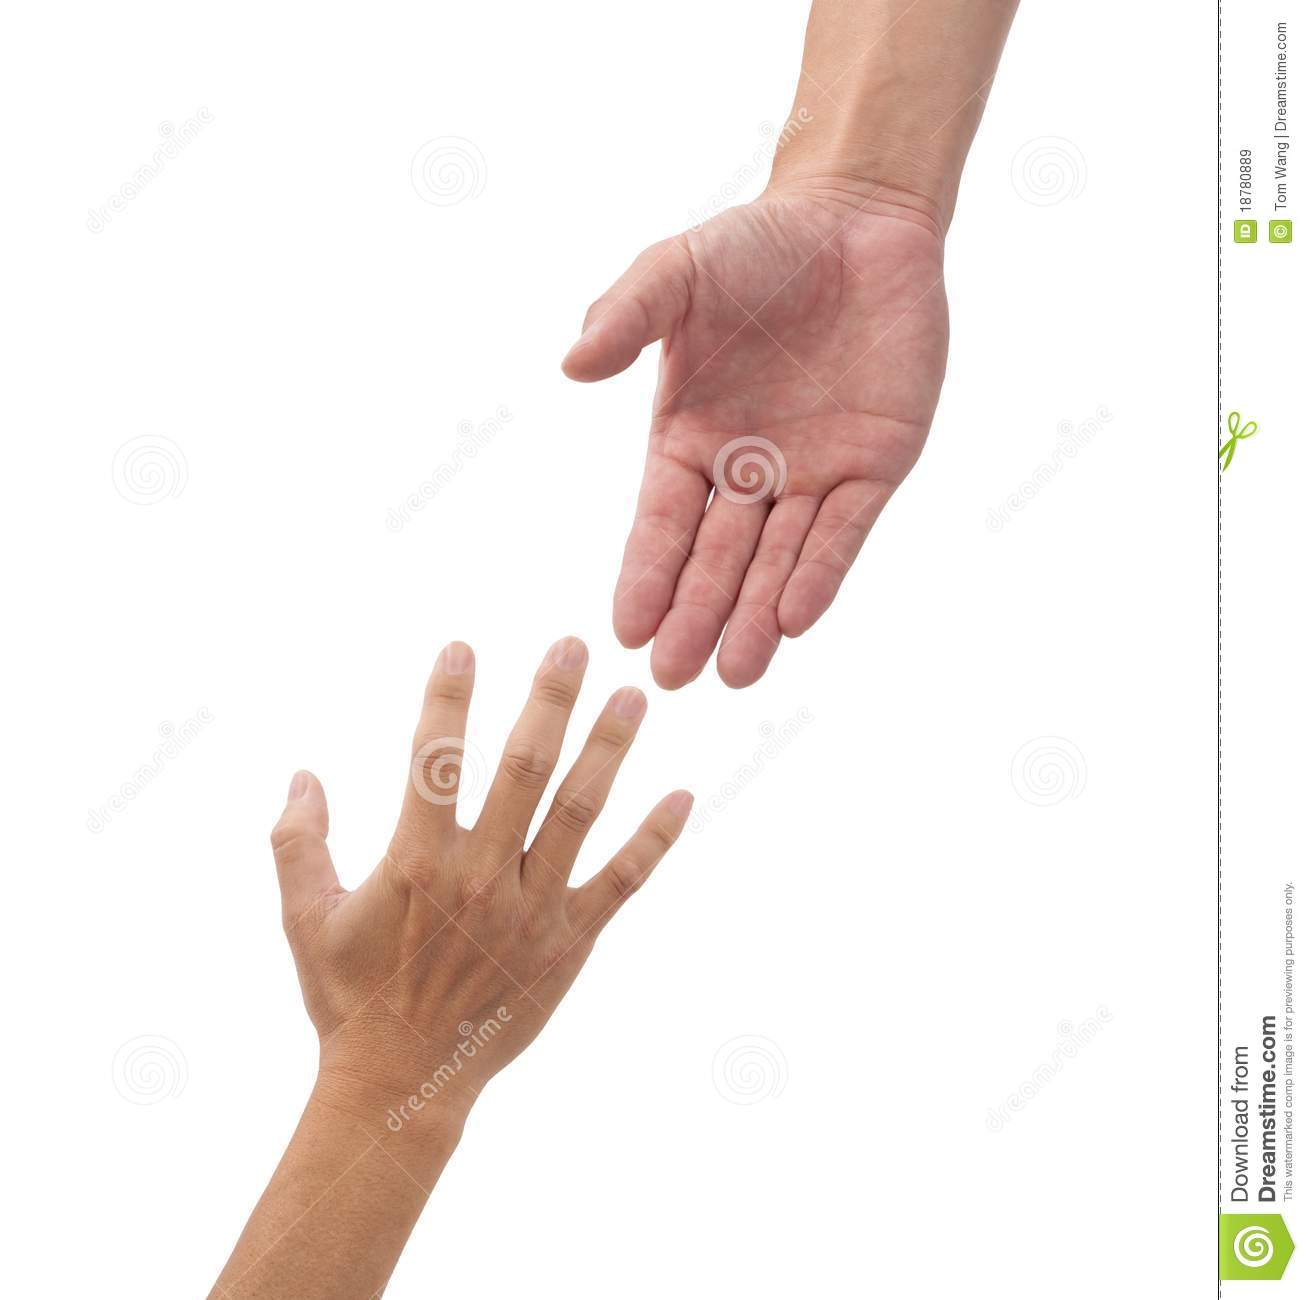 helping hands images free helping hands royalty free stock images image 18780889 9913